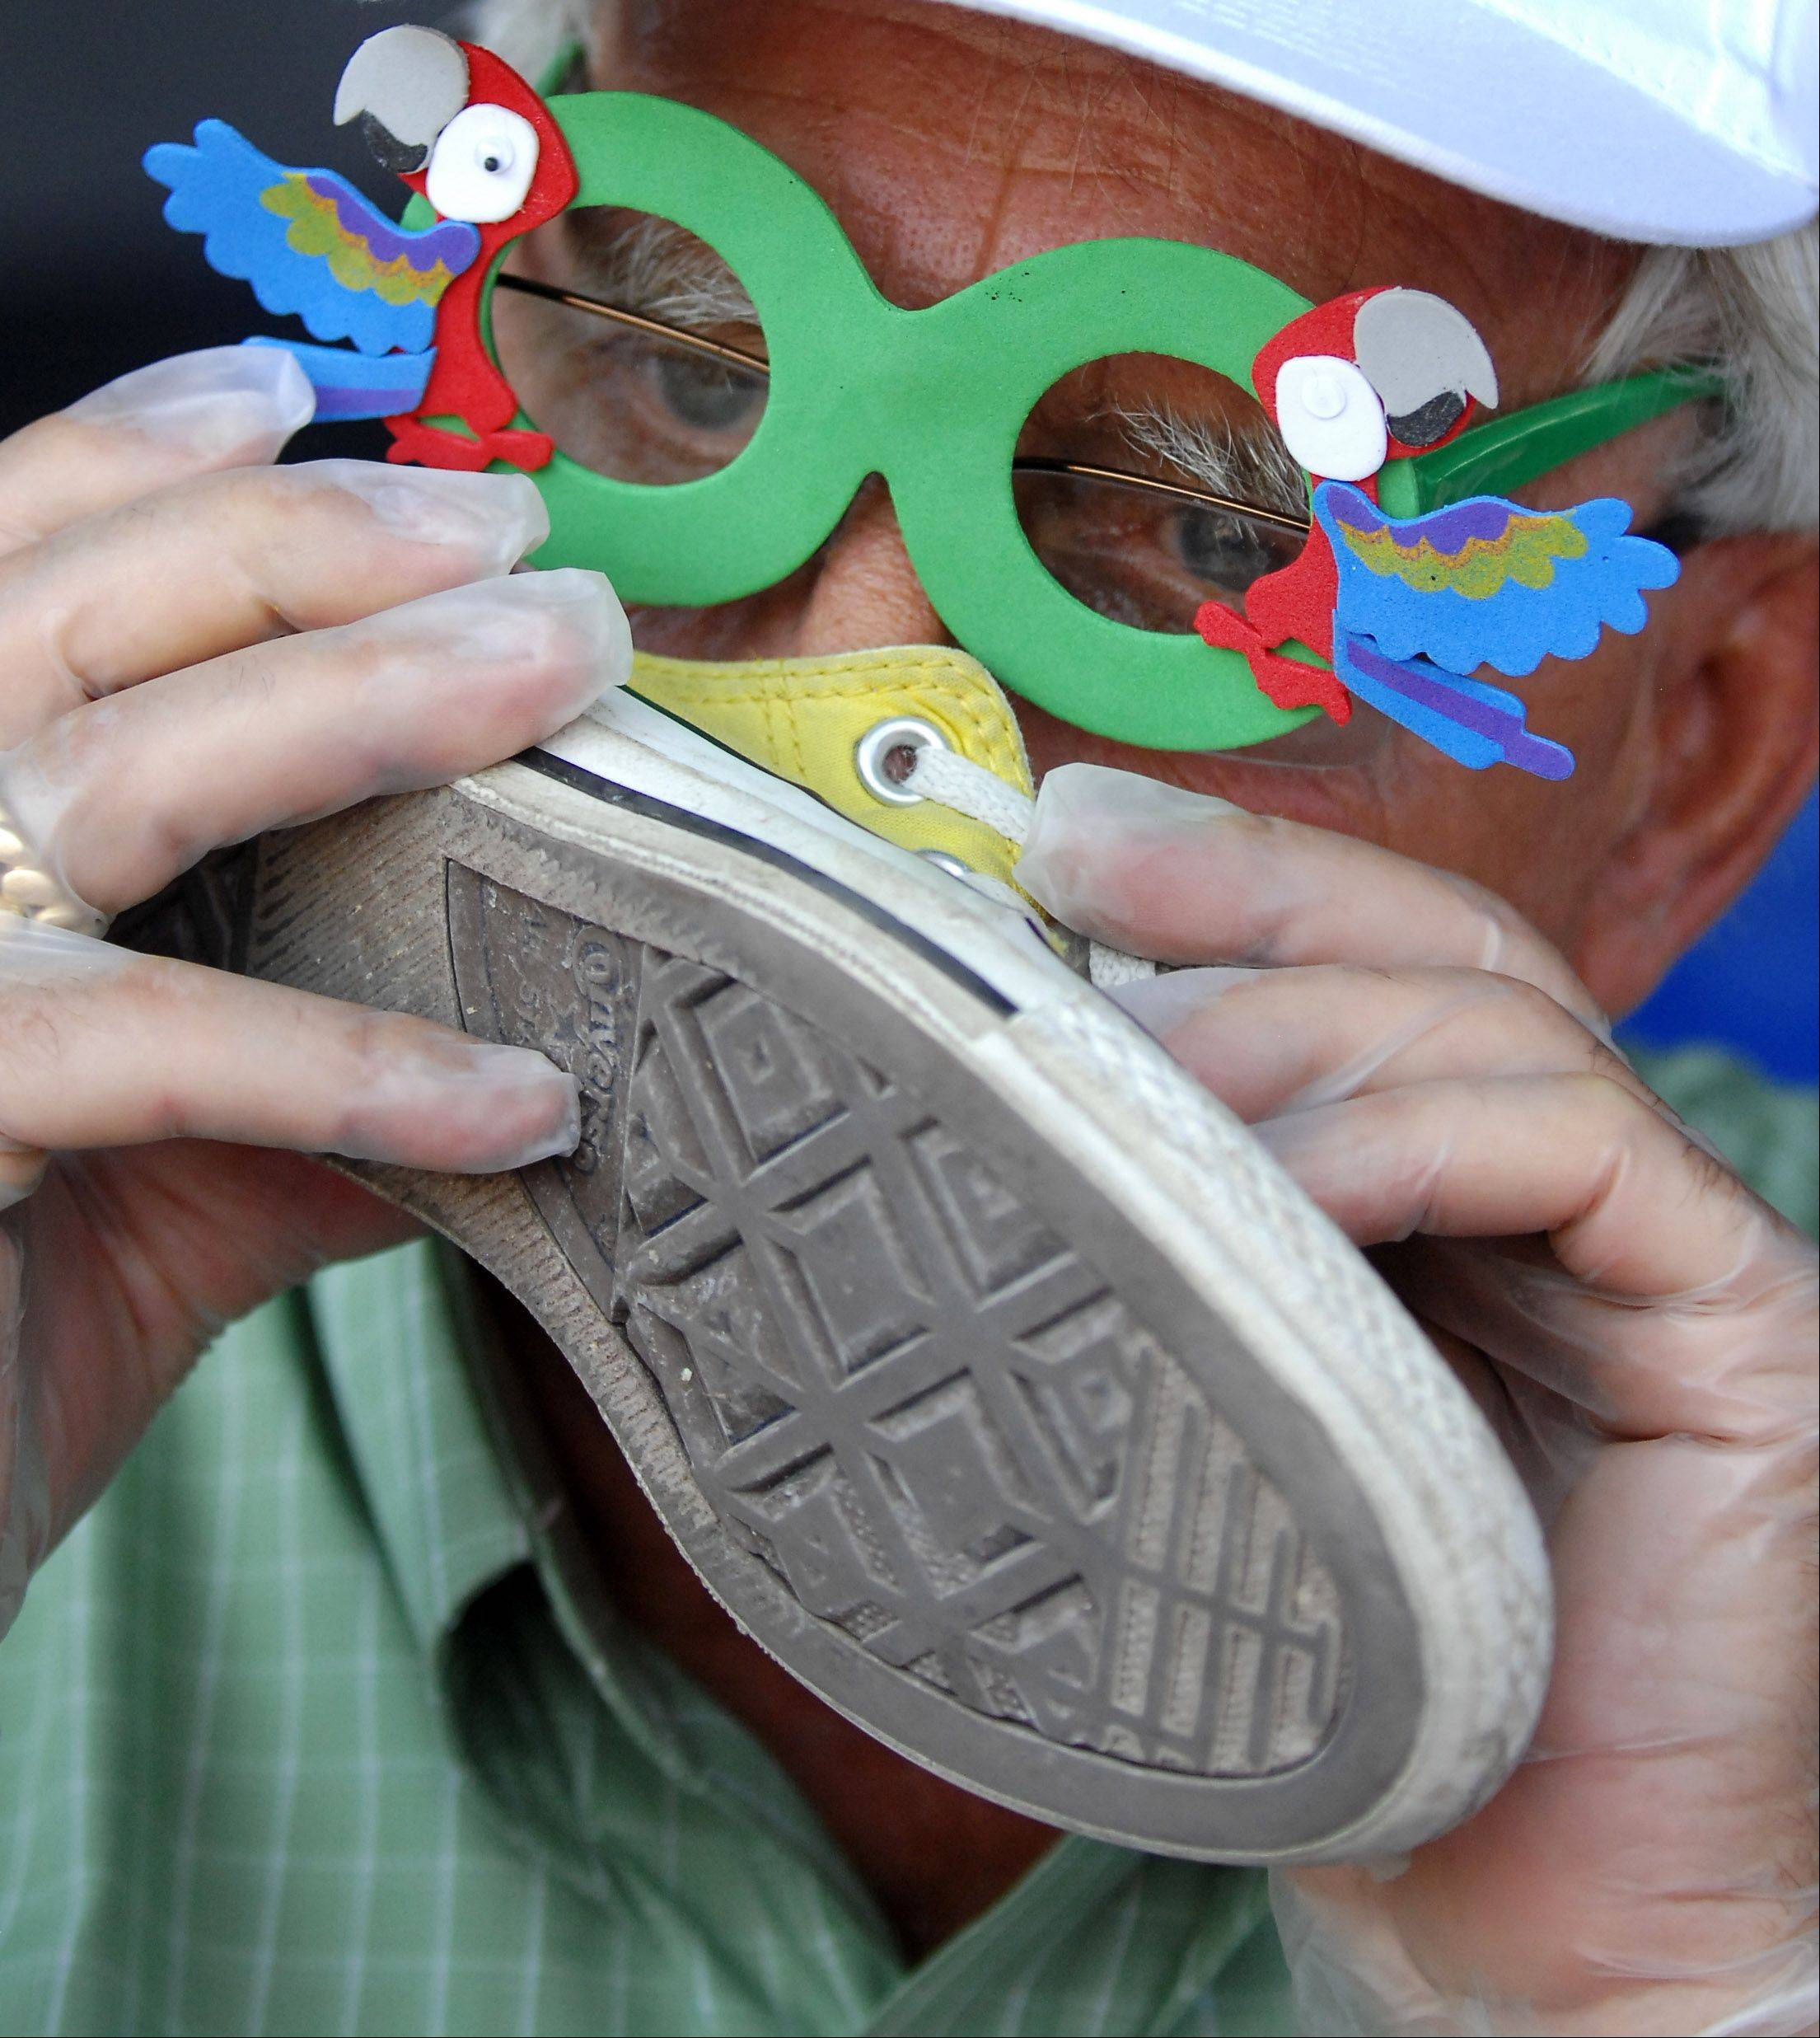 Judge Gene Schick sticks his nose right in there while trying to pick a winner at the Odor Eaters Rotten Sneaker Contest at the Kane County Fair in St. Charles Thursday. Schick is a member of the fair board and lives in Elgin. The novelty glasses allegedly aided in odor detection.